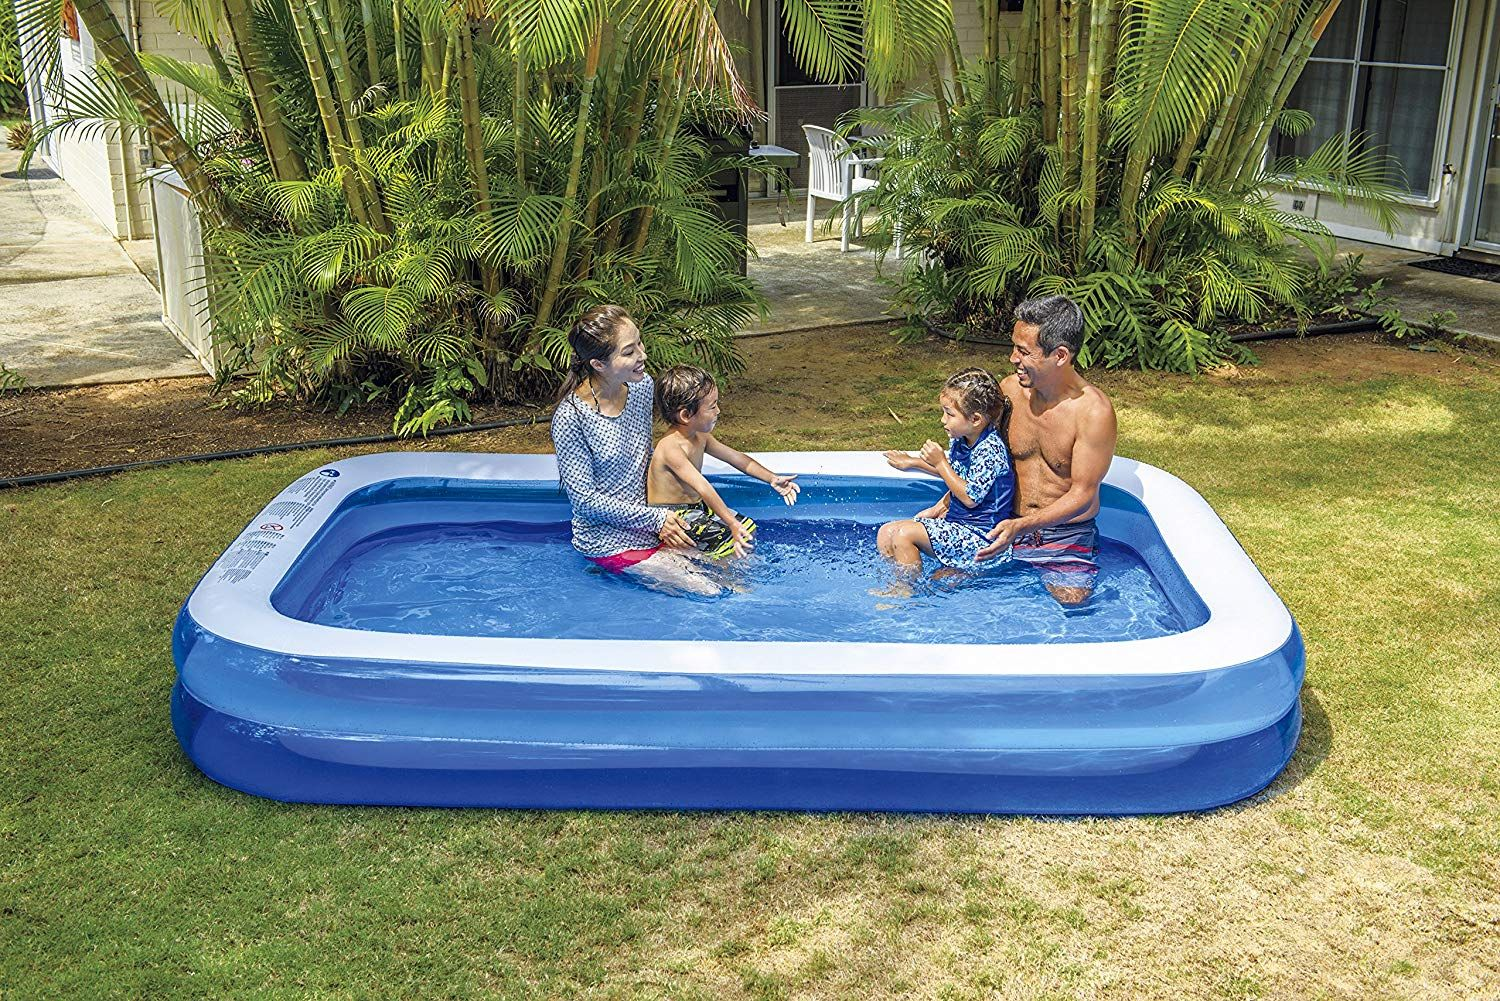 Top 10 Best Inflatable Pools In 2021 Reviews Hqreview Kiddie Pool Inflatable Pool Children Swimming Pool